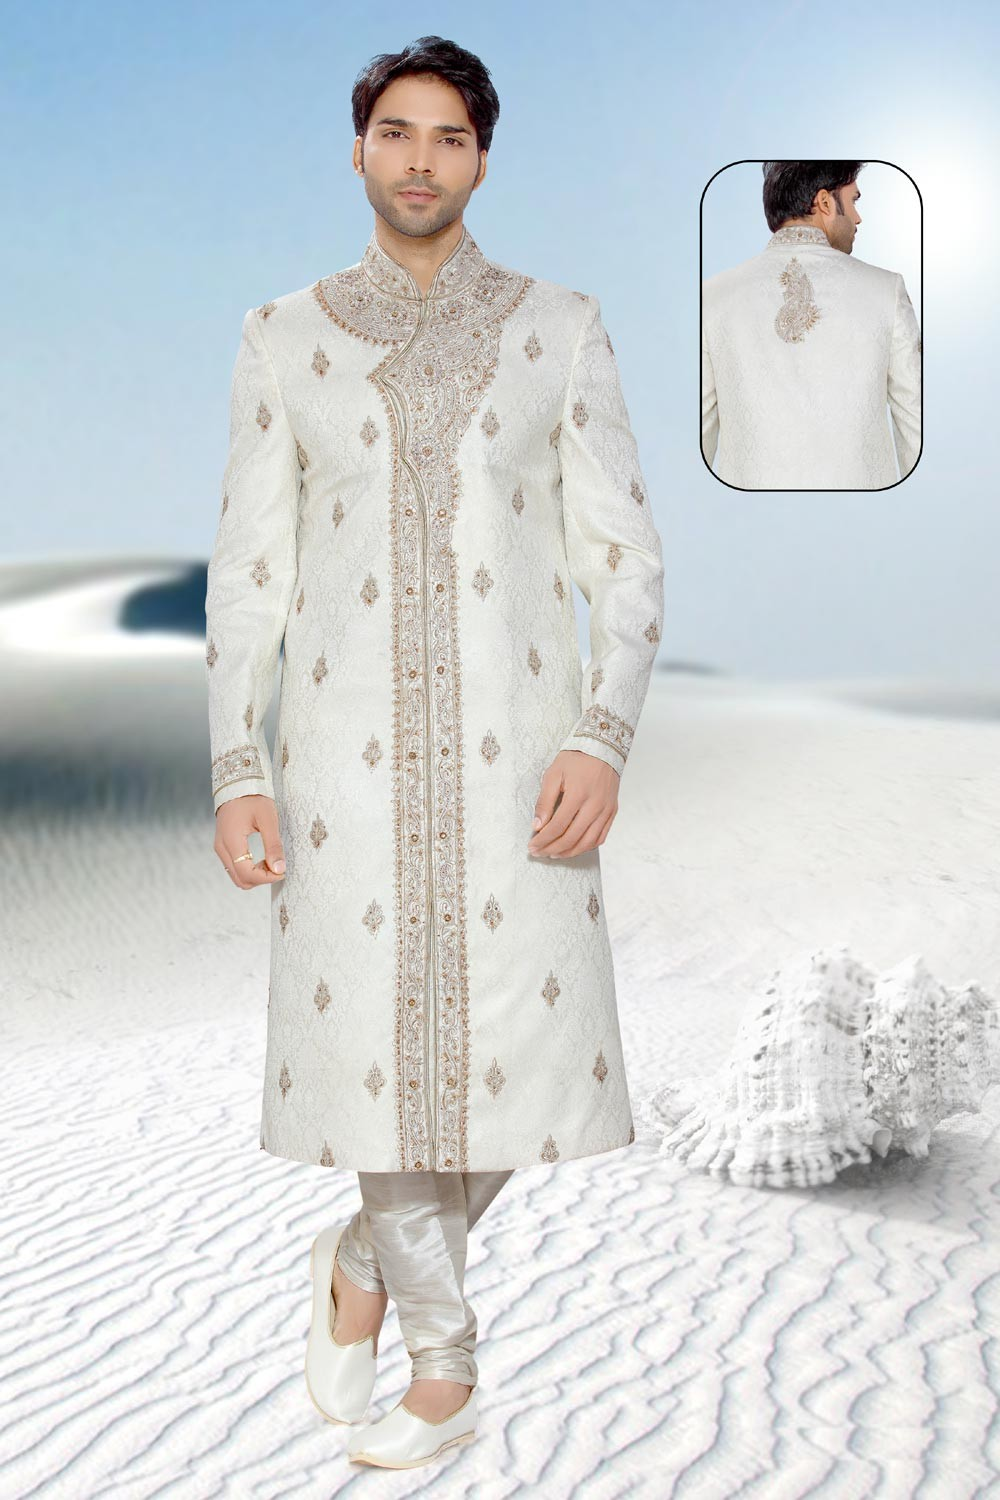 Off White Brocade Men's Sherwani